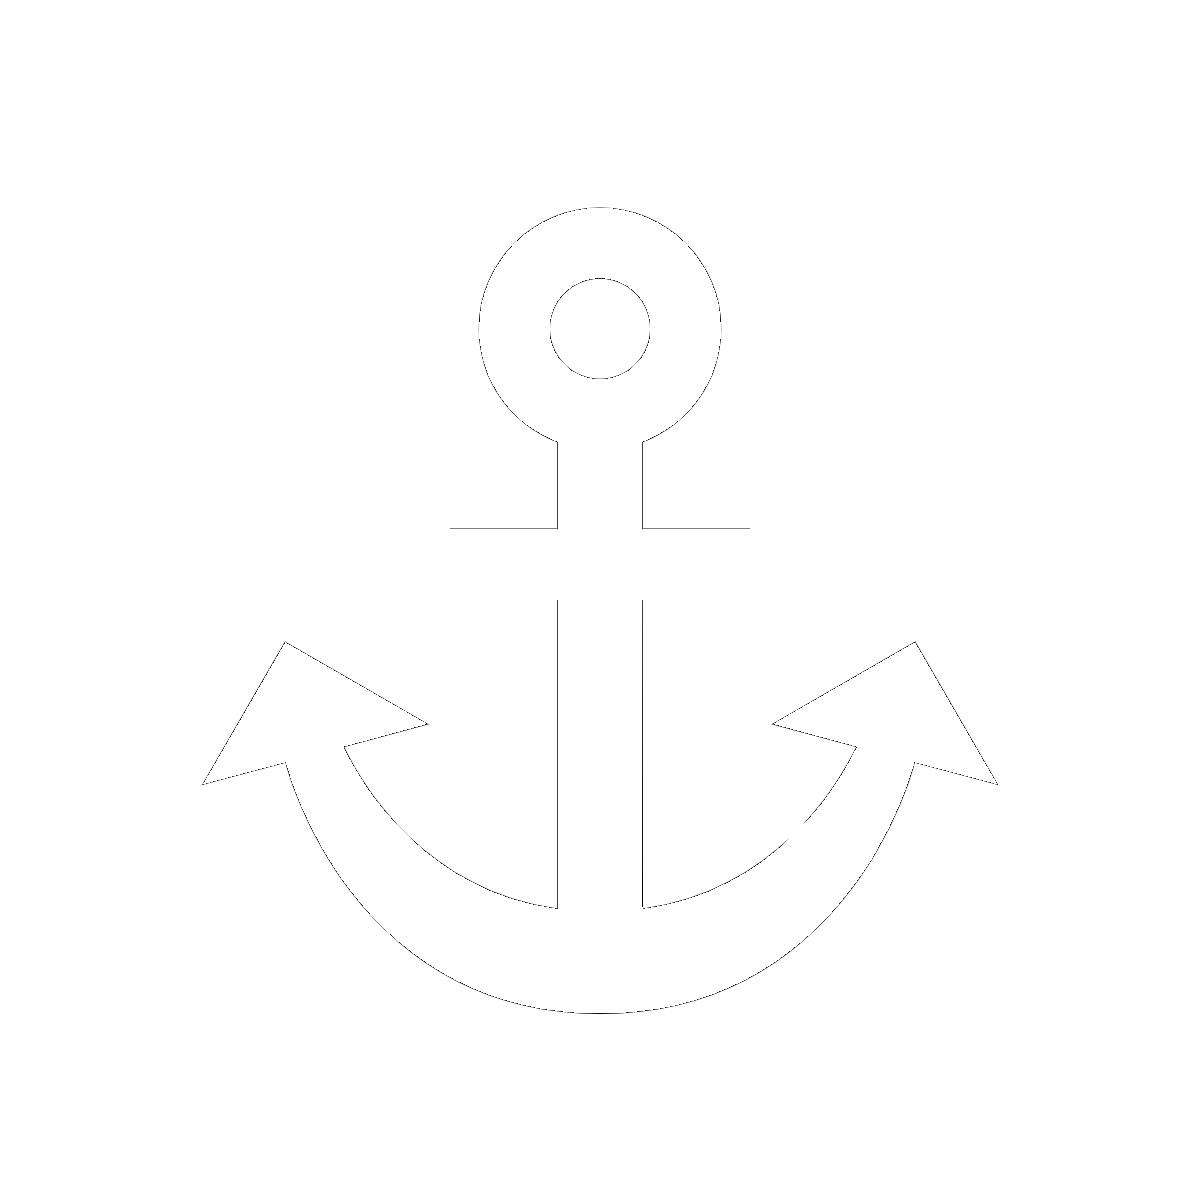 Symbol The Anchor